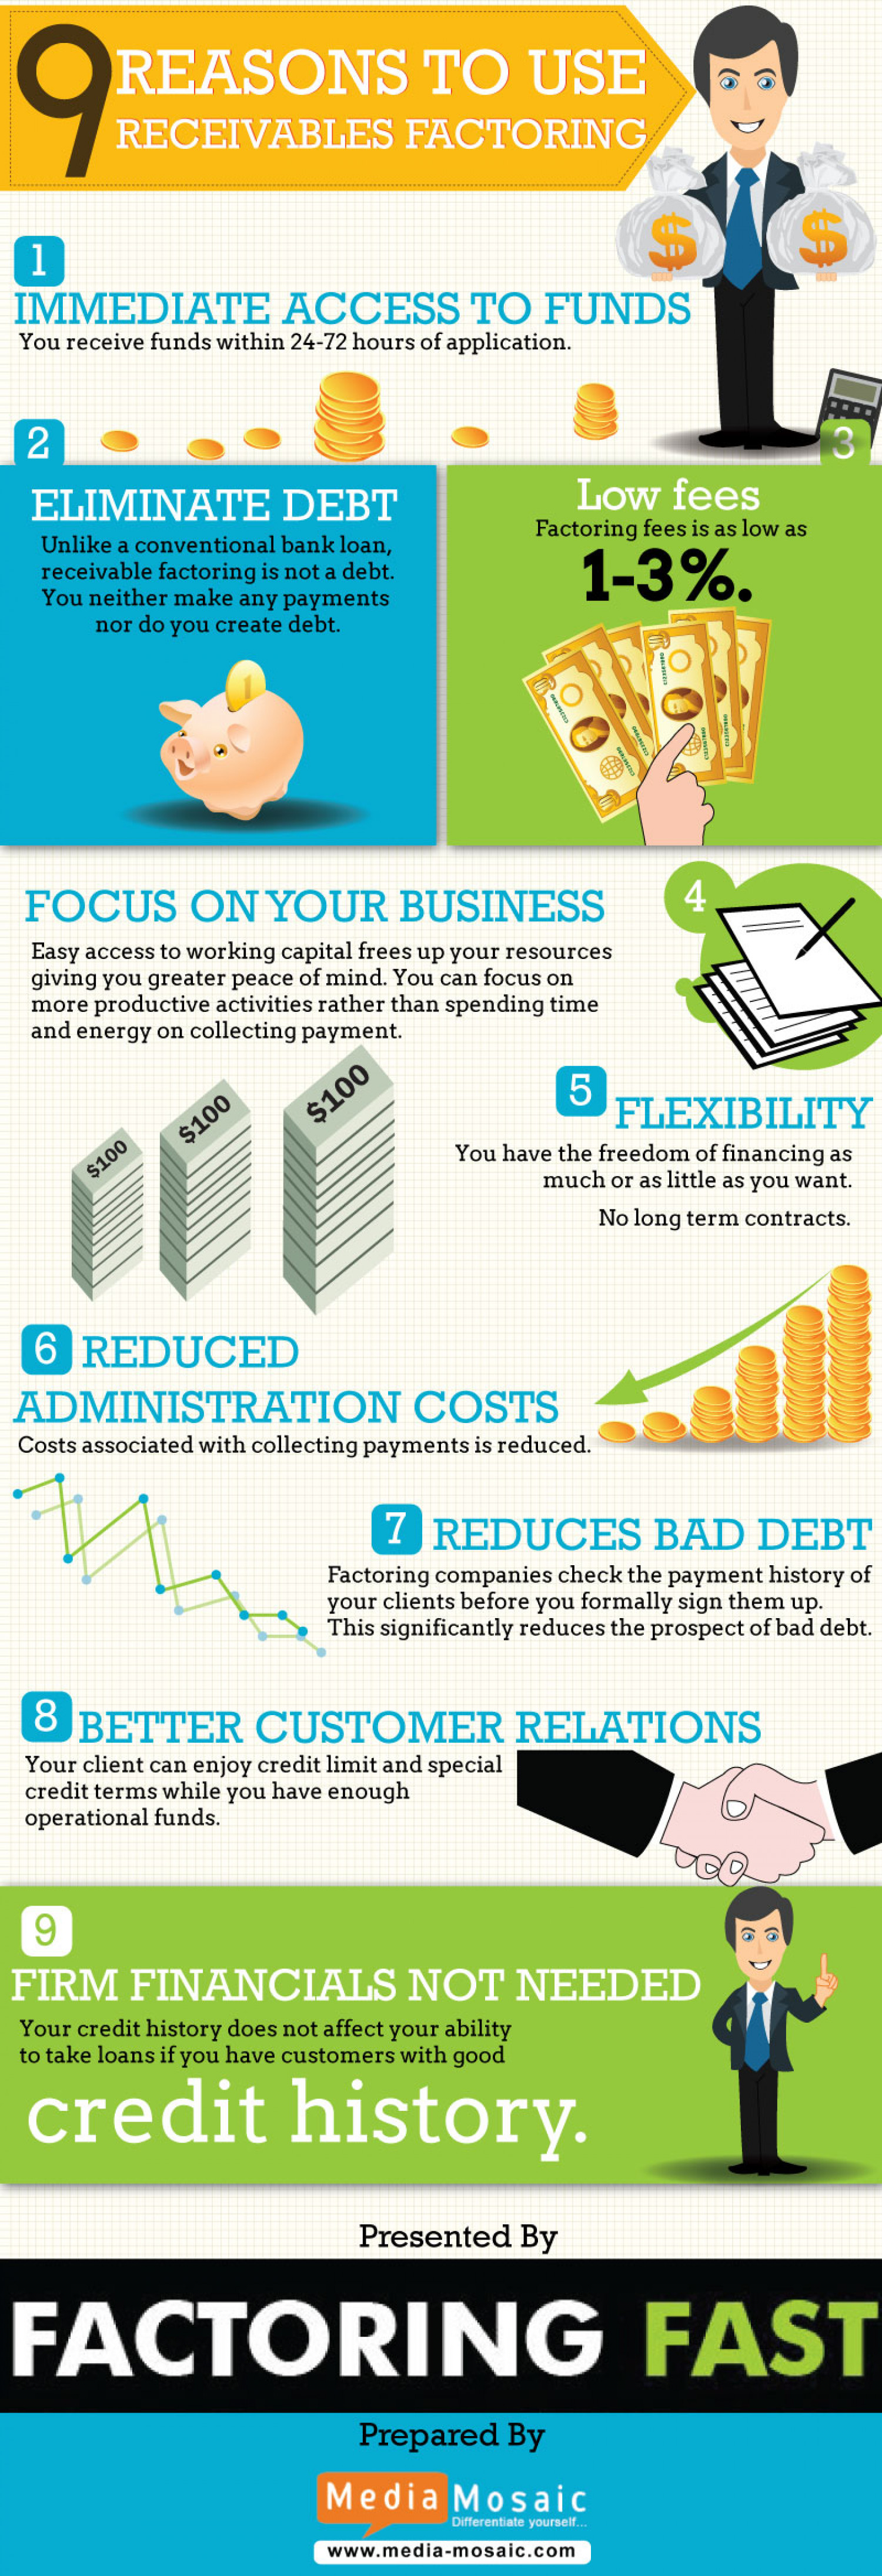 9 Reasons To Use Receivables Factoring Infographic